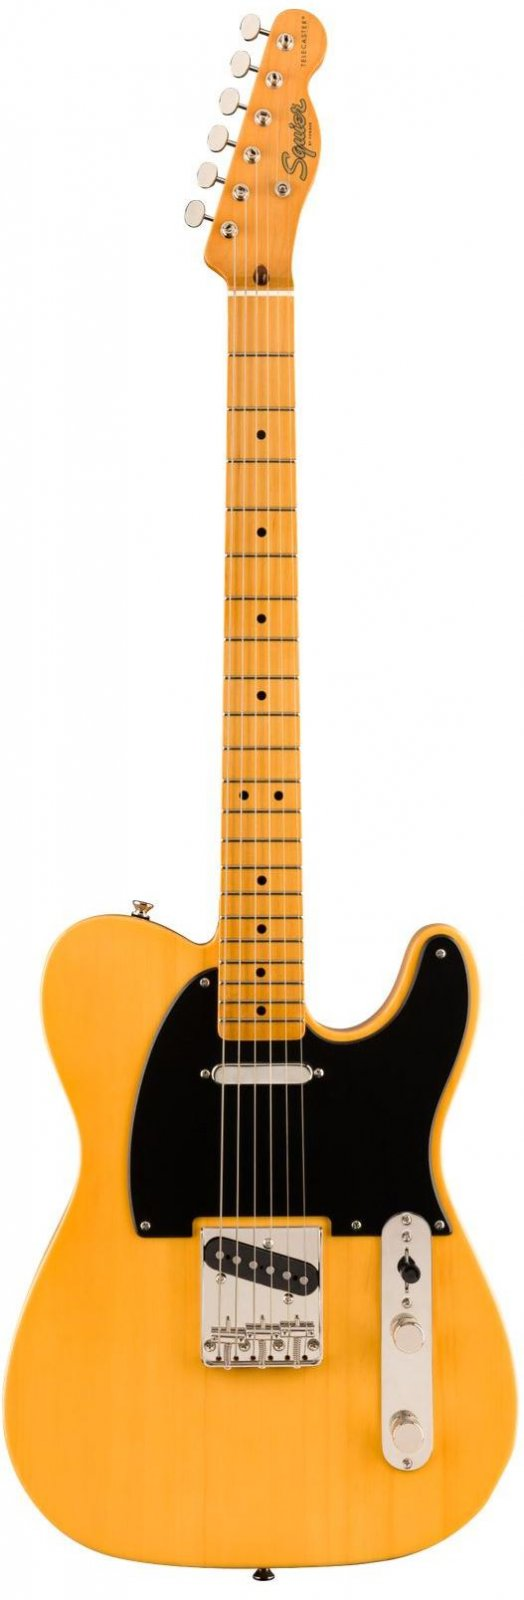 Squier 0374030550 Classic Vibe '50s Telecaster, Maple Fingerboard - Butterscotch Blonde